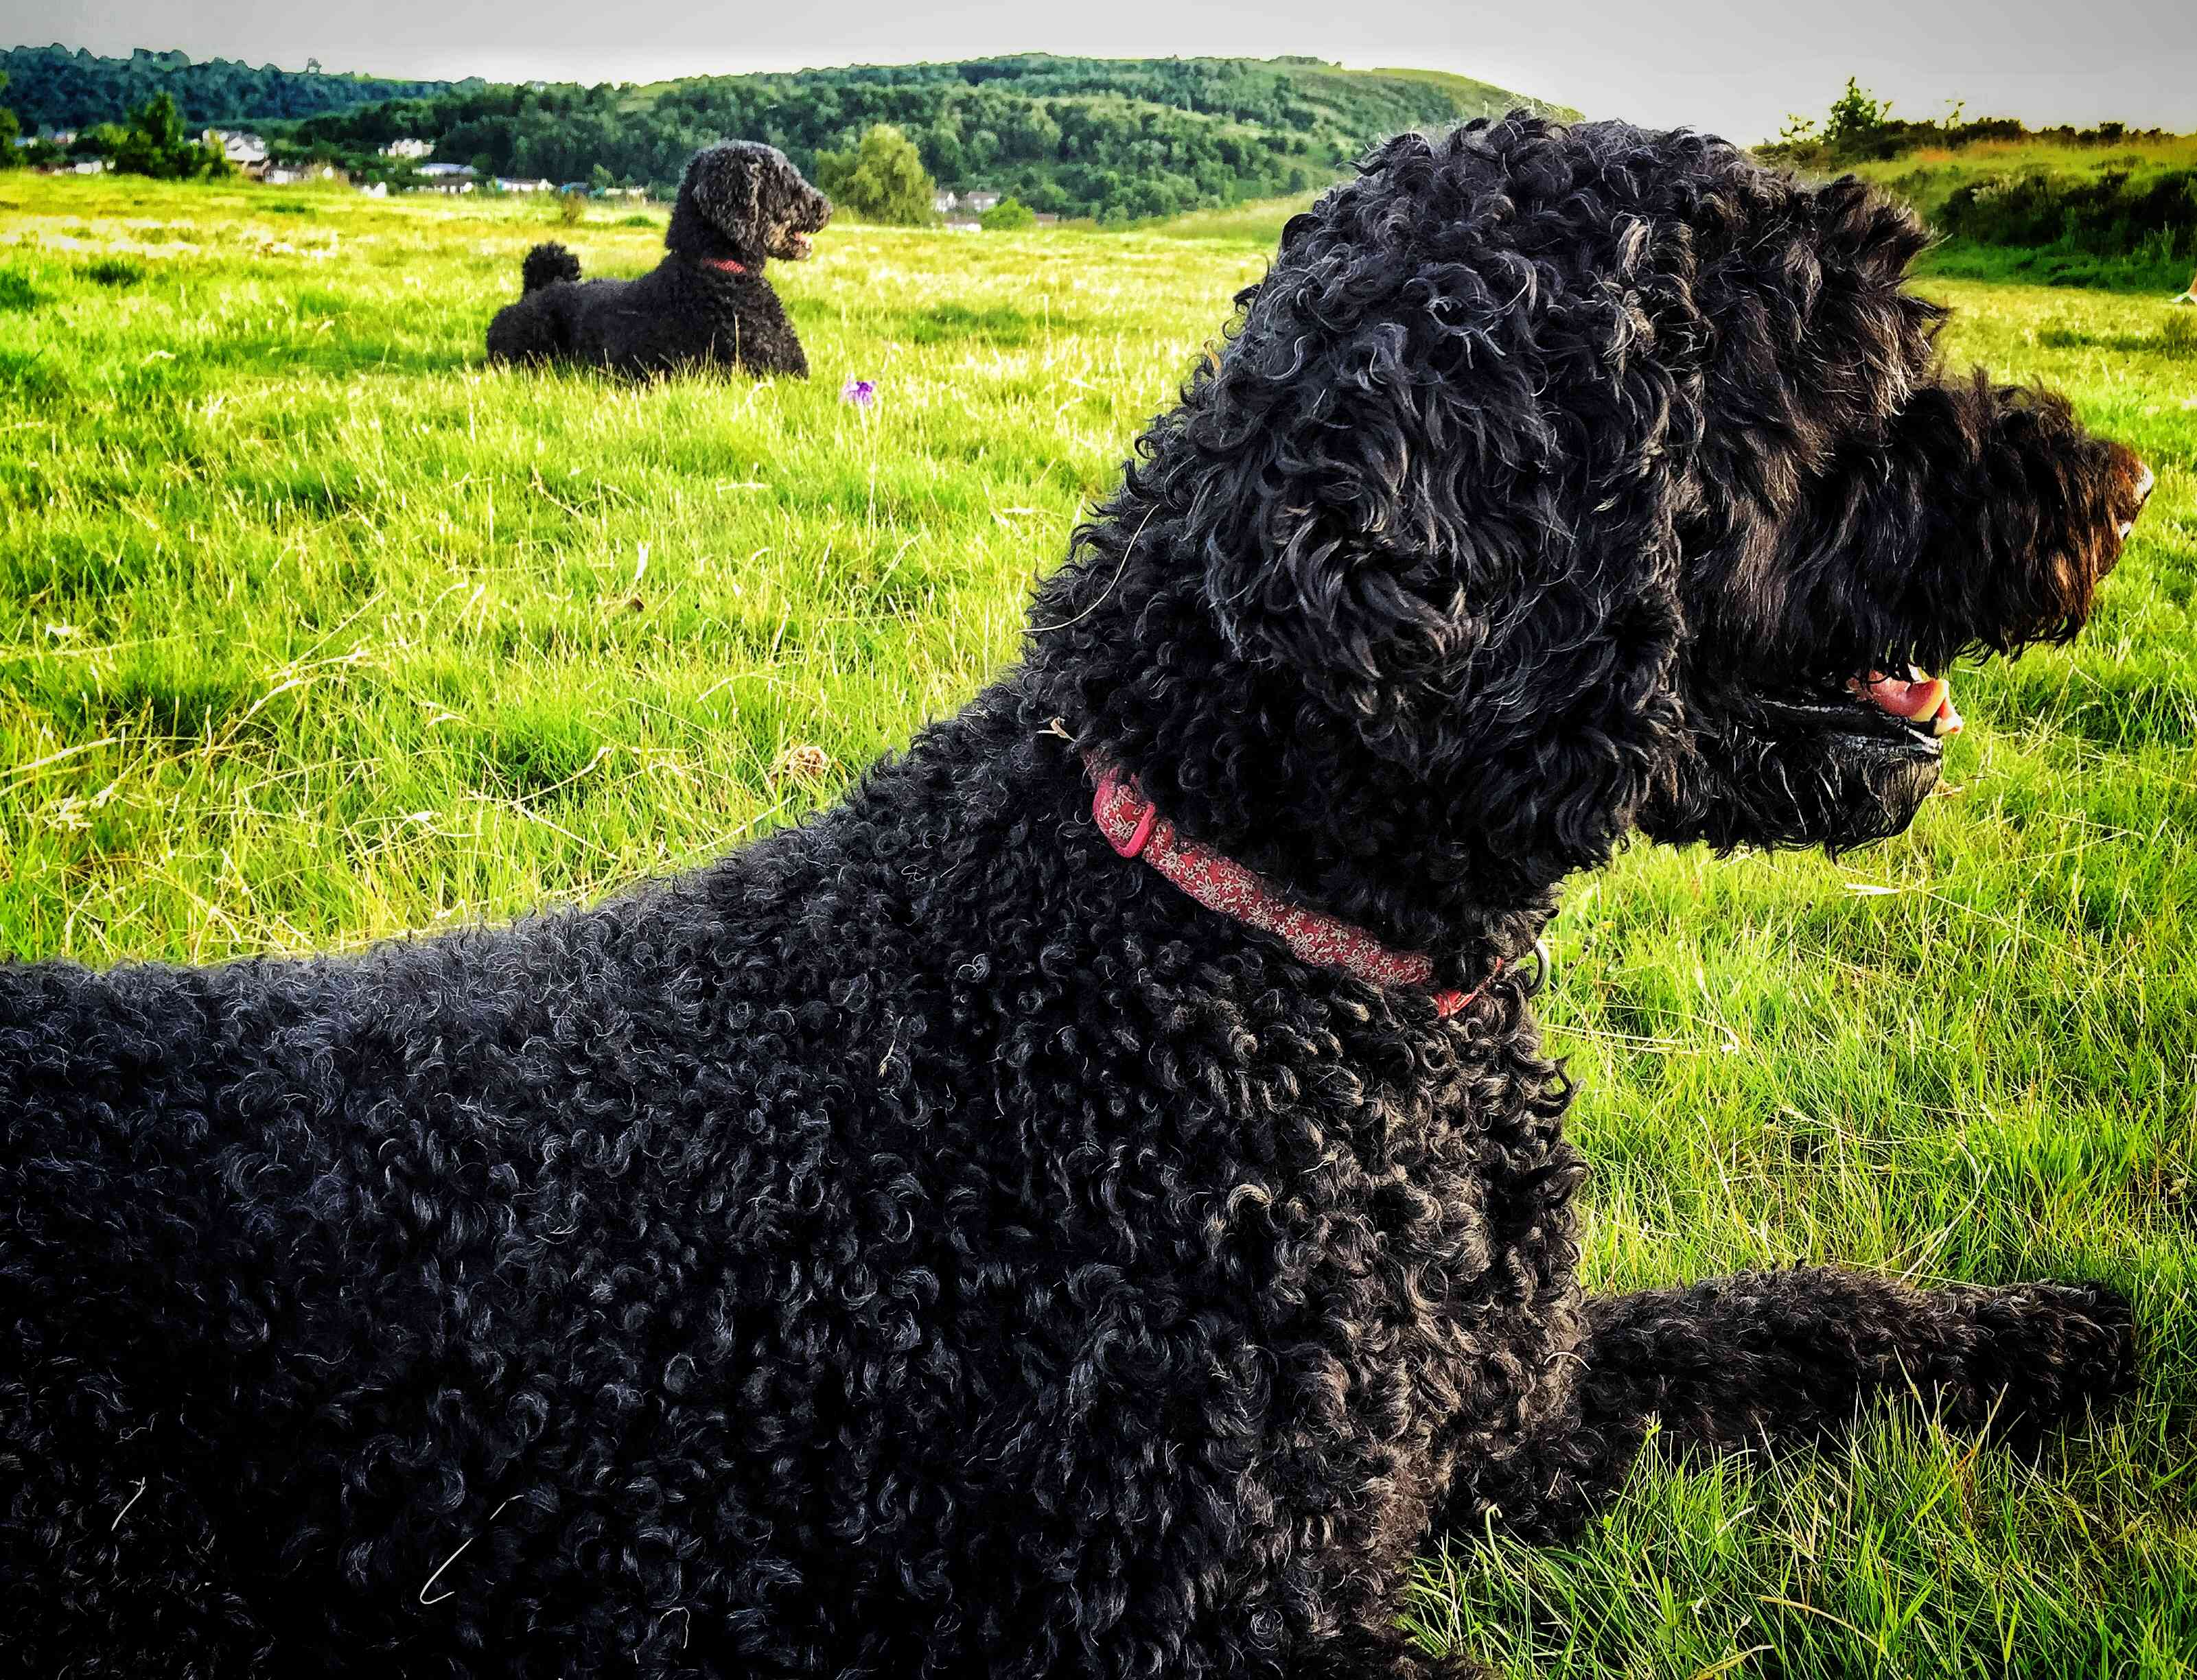 Two Portuguese water dogs outdoors